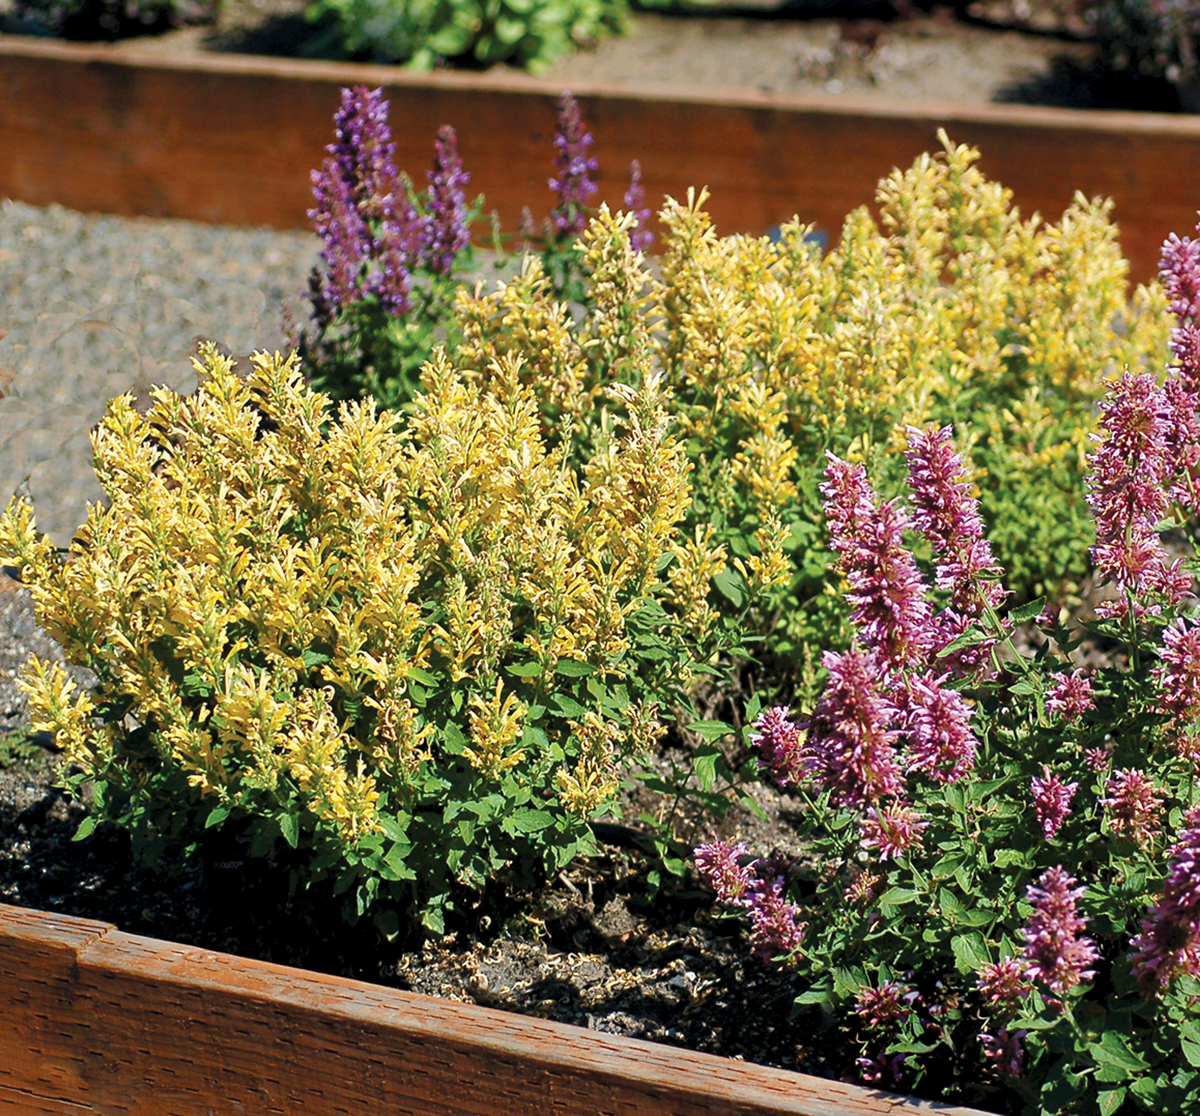 Agastache-Poquito-Butter-Yellow-3.jpg